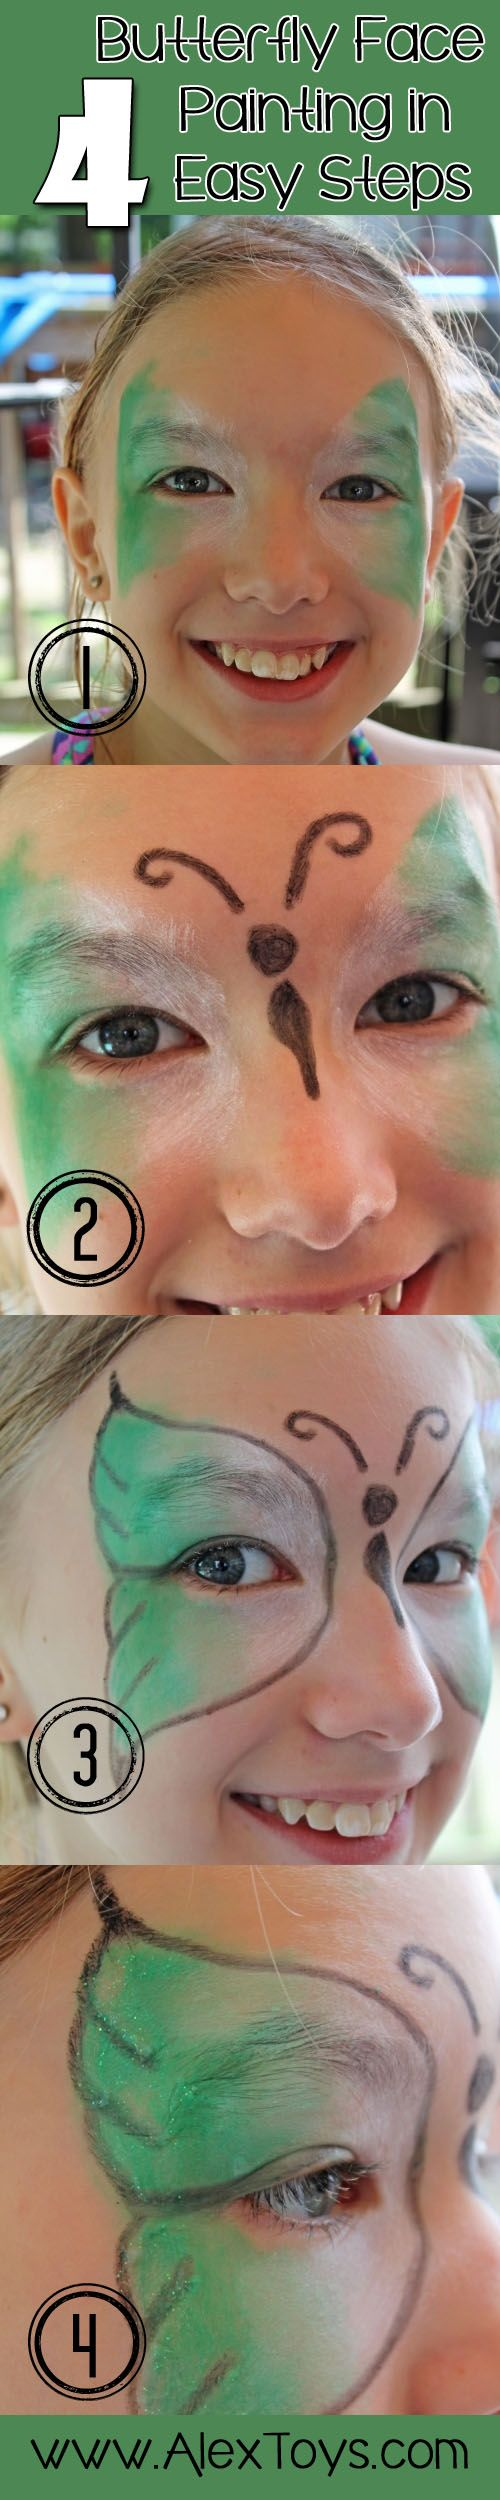 DIY butterfly #facepainting in 4 EASY steps! http://blog.alextoys.com/how-to-face-paint/ via @ALEX Toys by @Angie Knutson